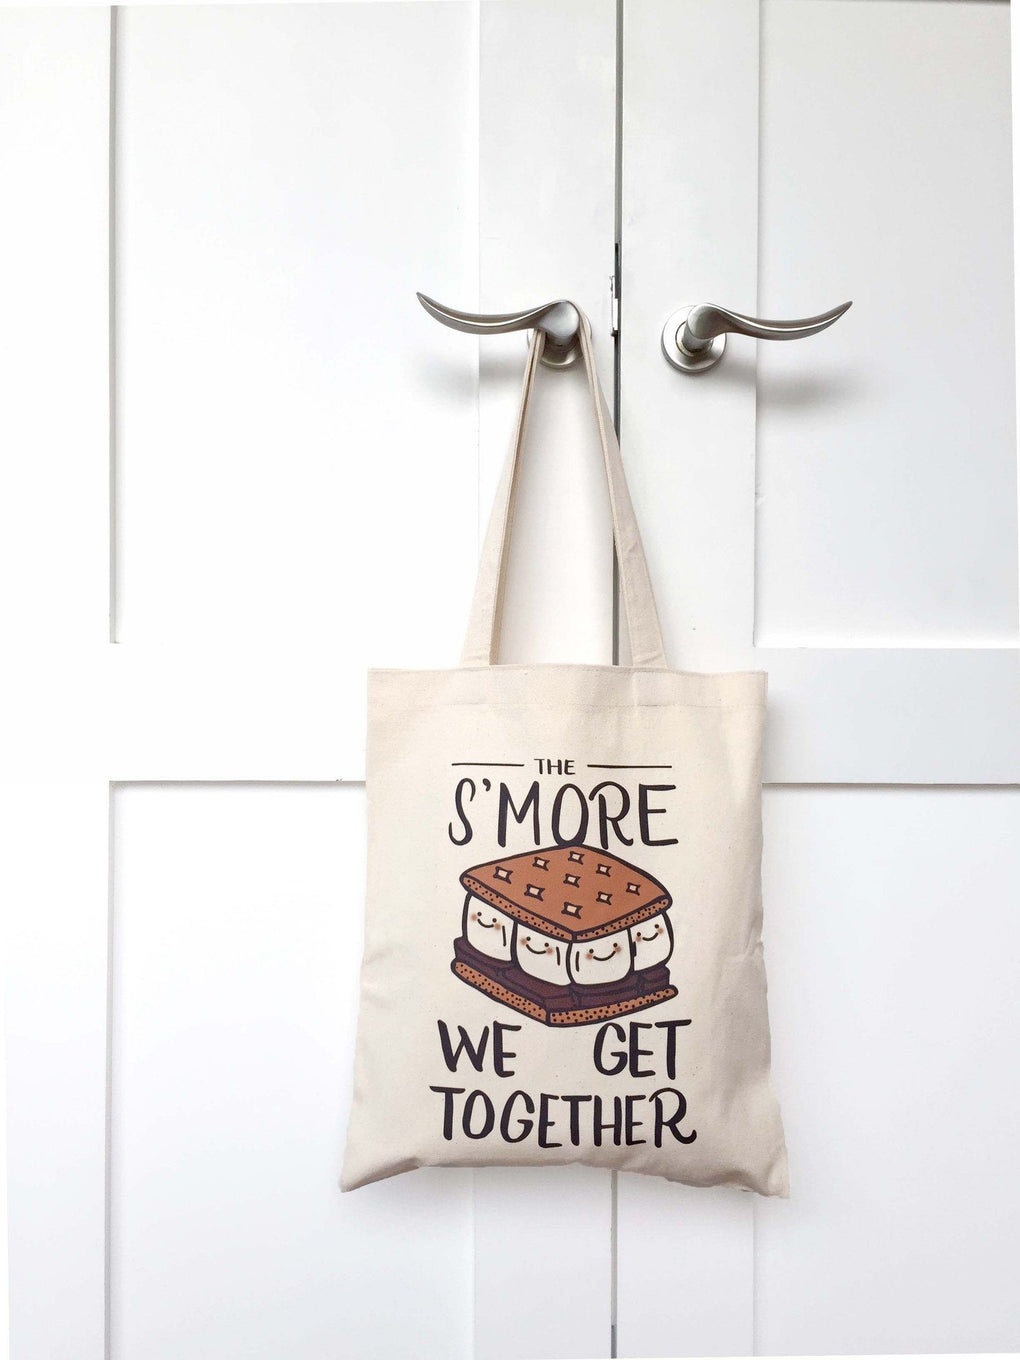 S'more Tote Bag Tote Bags A Wild Exploration